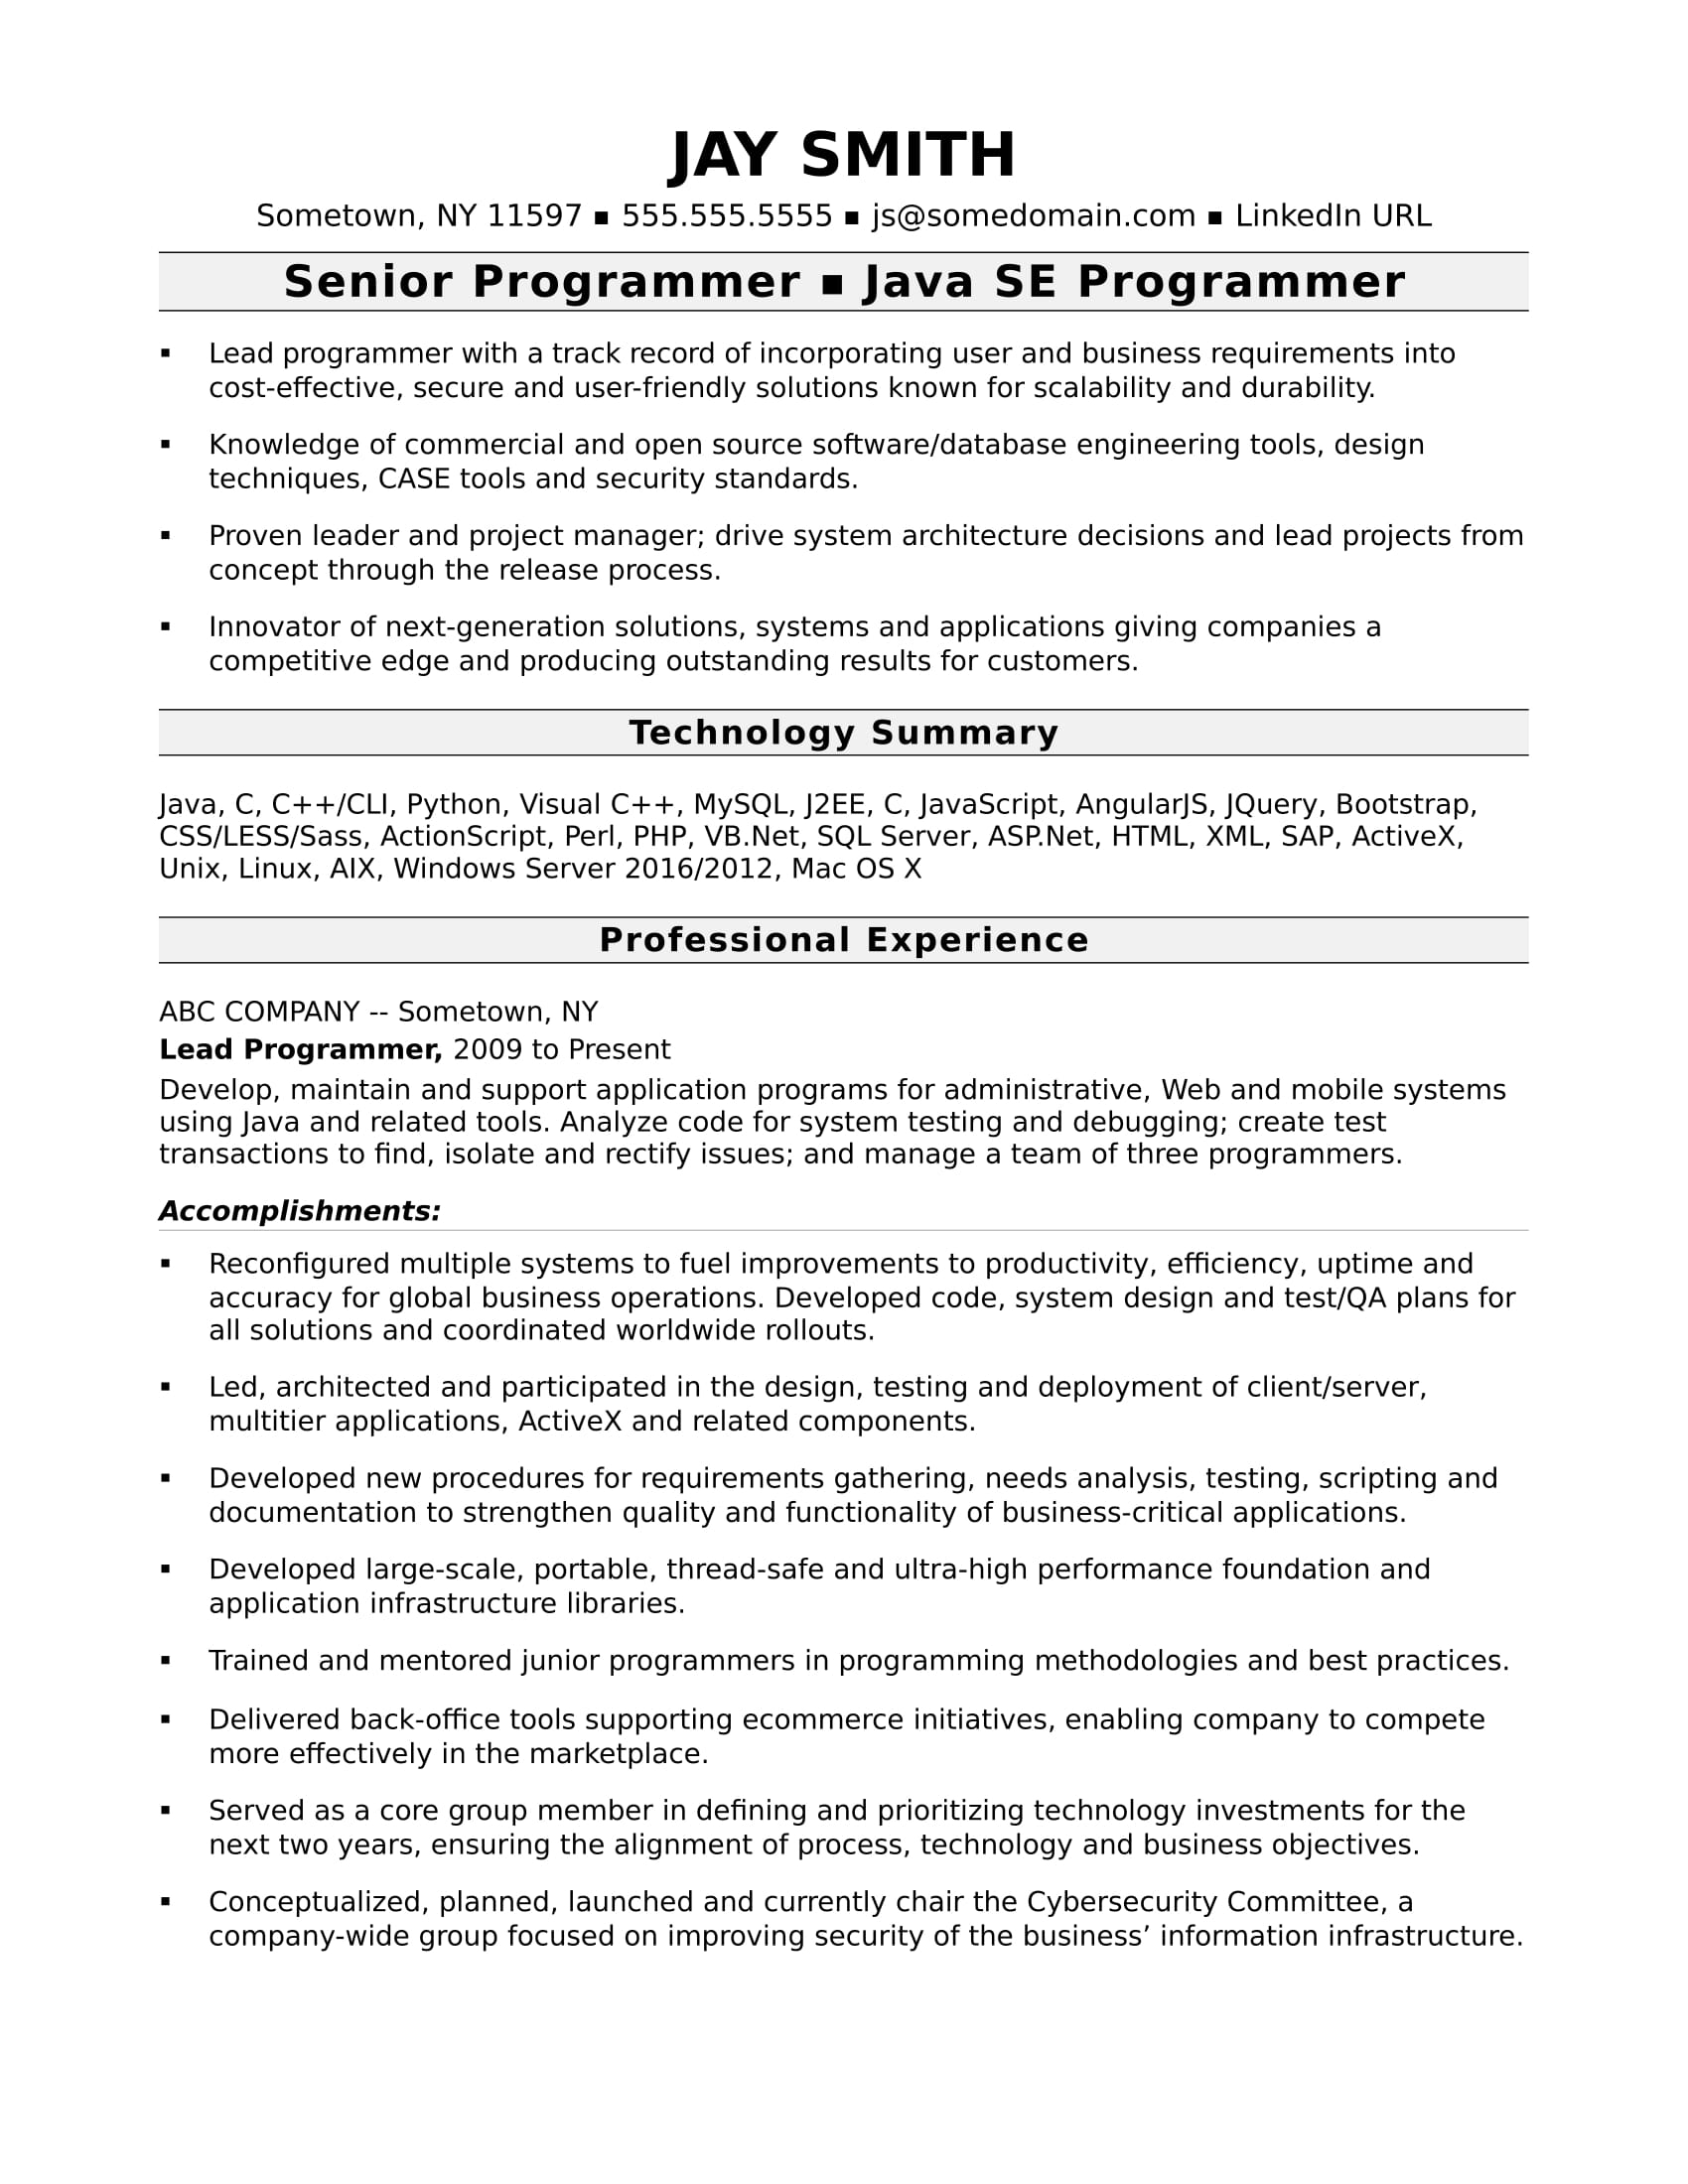 sample resume for an experienced computer programmer - Sample It Resume